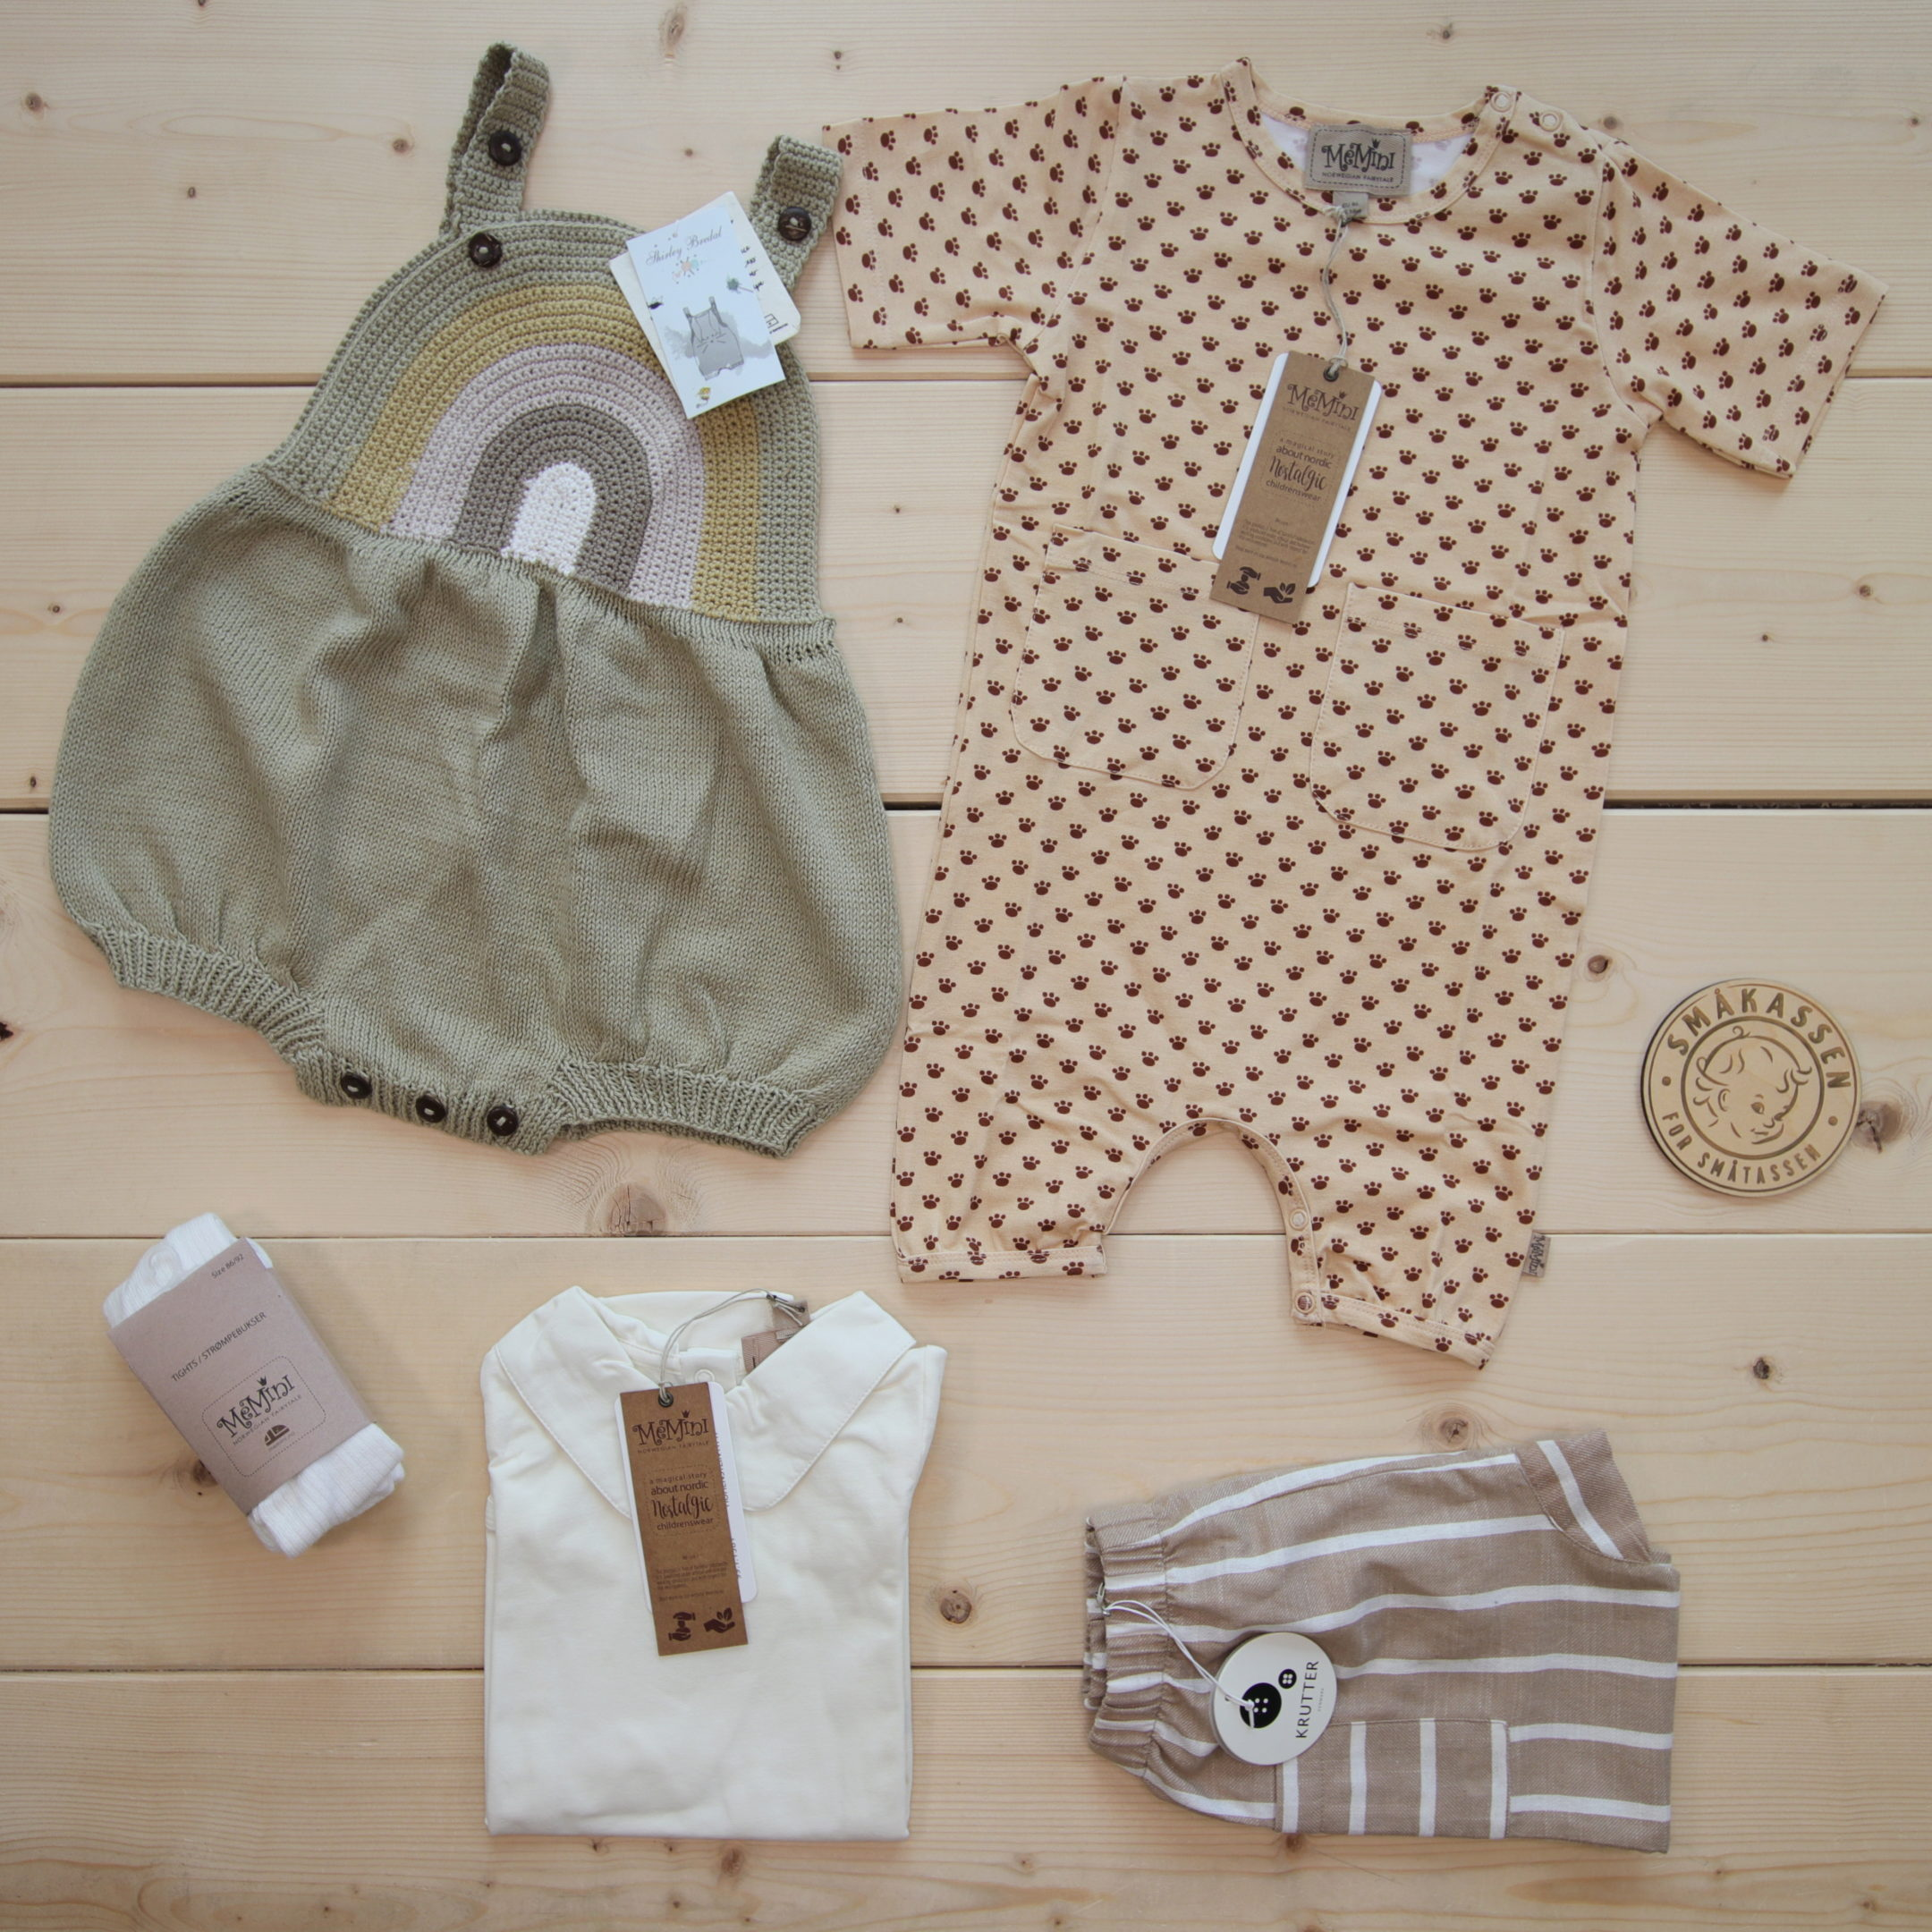 This is a 2000 NOK* Småkassen that we prepared for a boy  in the style cute in size 86